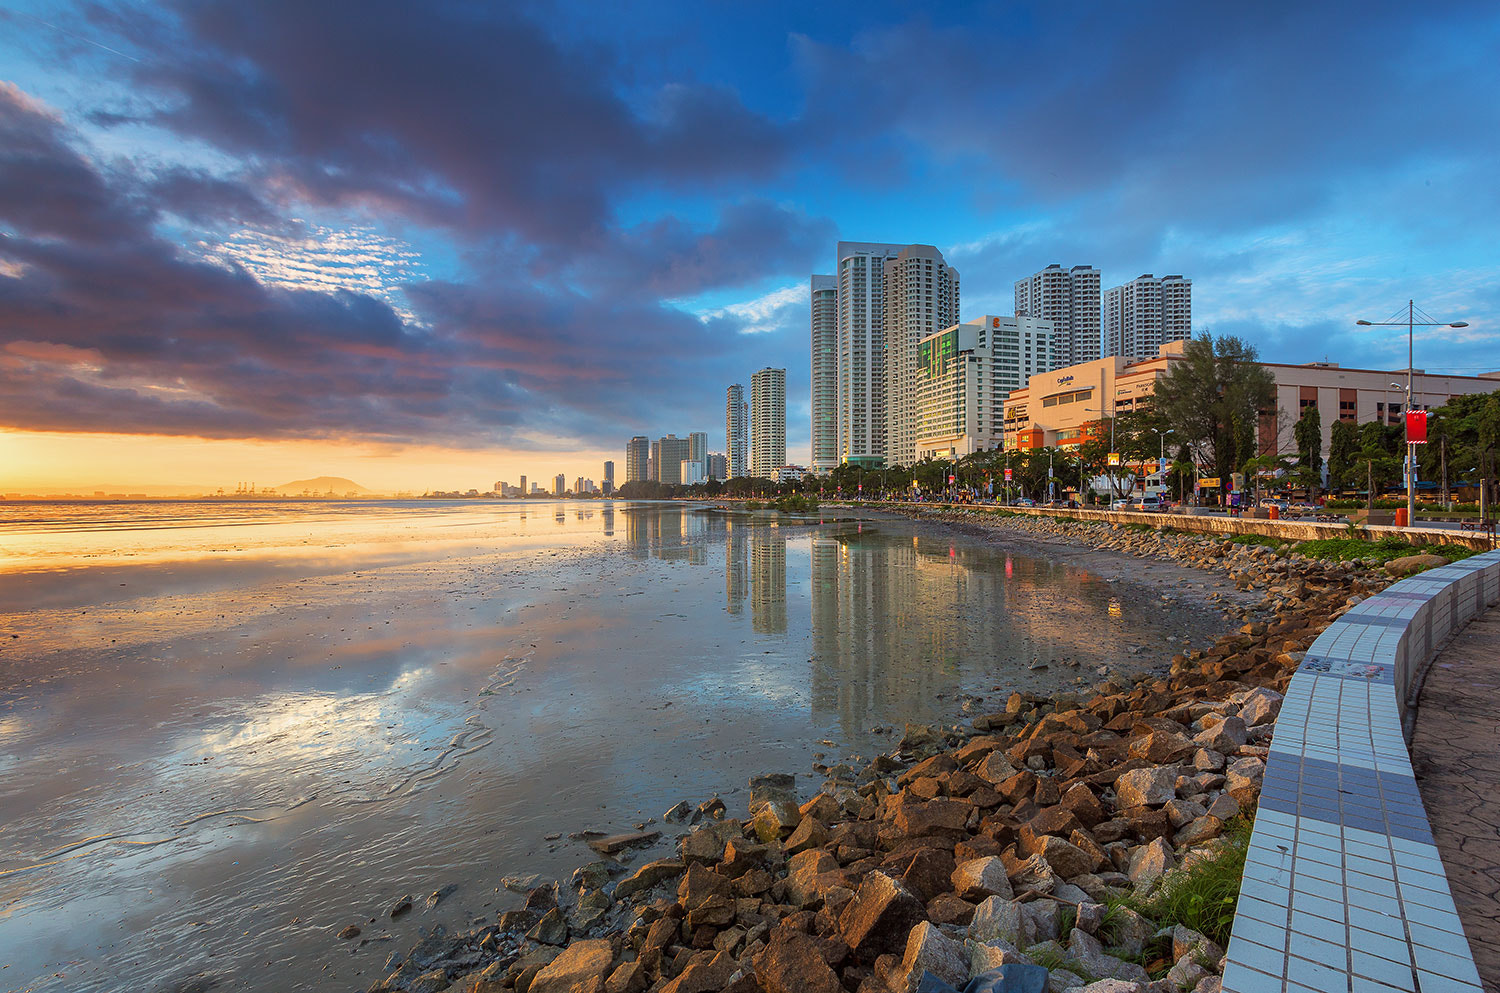 Photograph Gurney Drive by Suhaimi Hassan on 500px